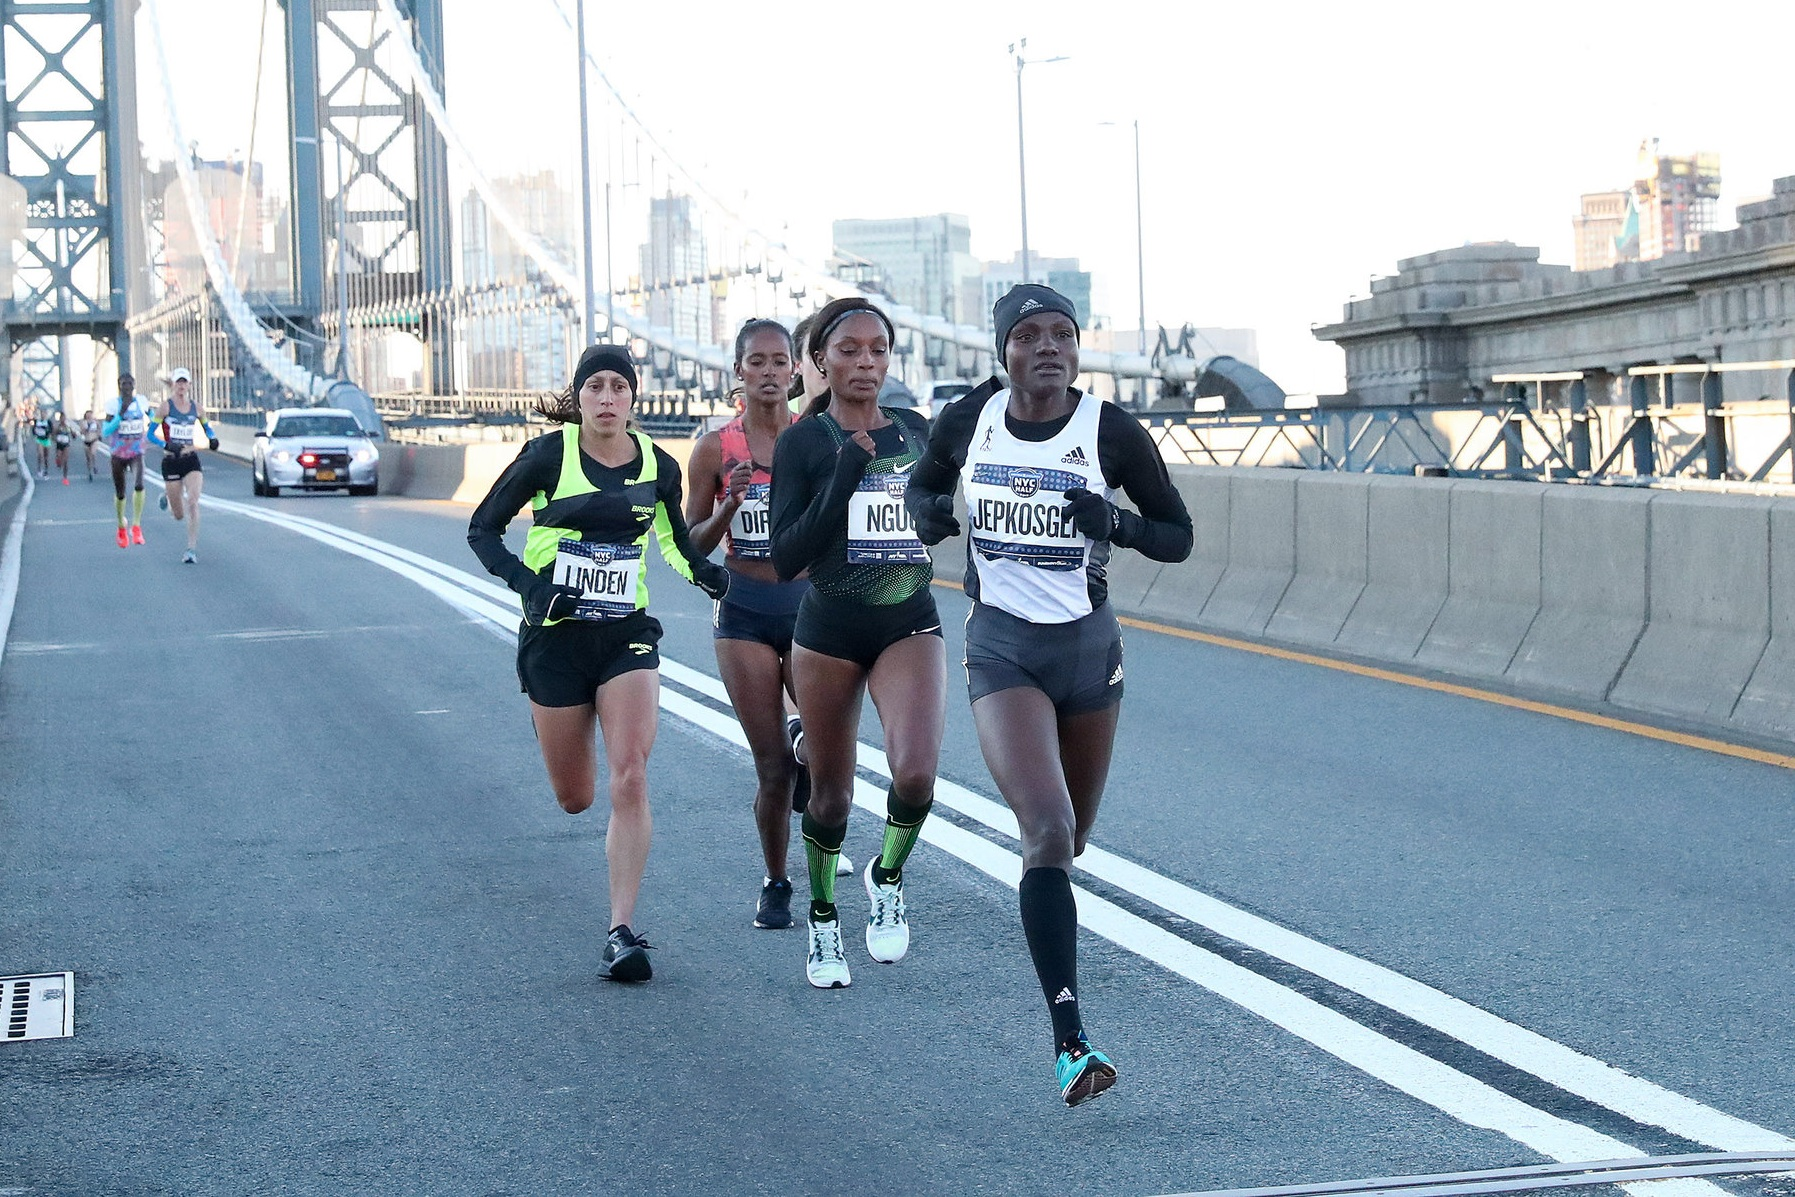 Ngugi, shown here in the lead pack at the 2019 United Airlines NYC Half, knows that she'll once again learn a lot from racing on the streets of NYC.